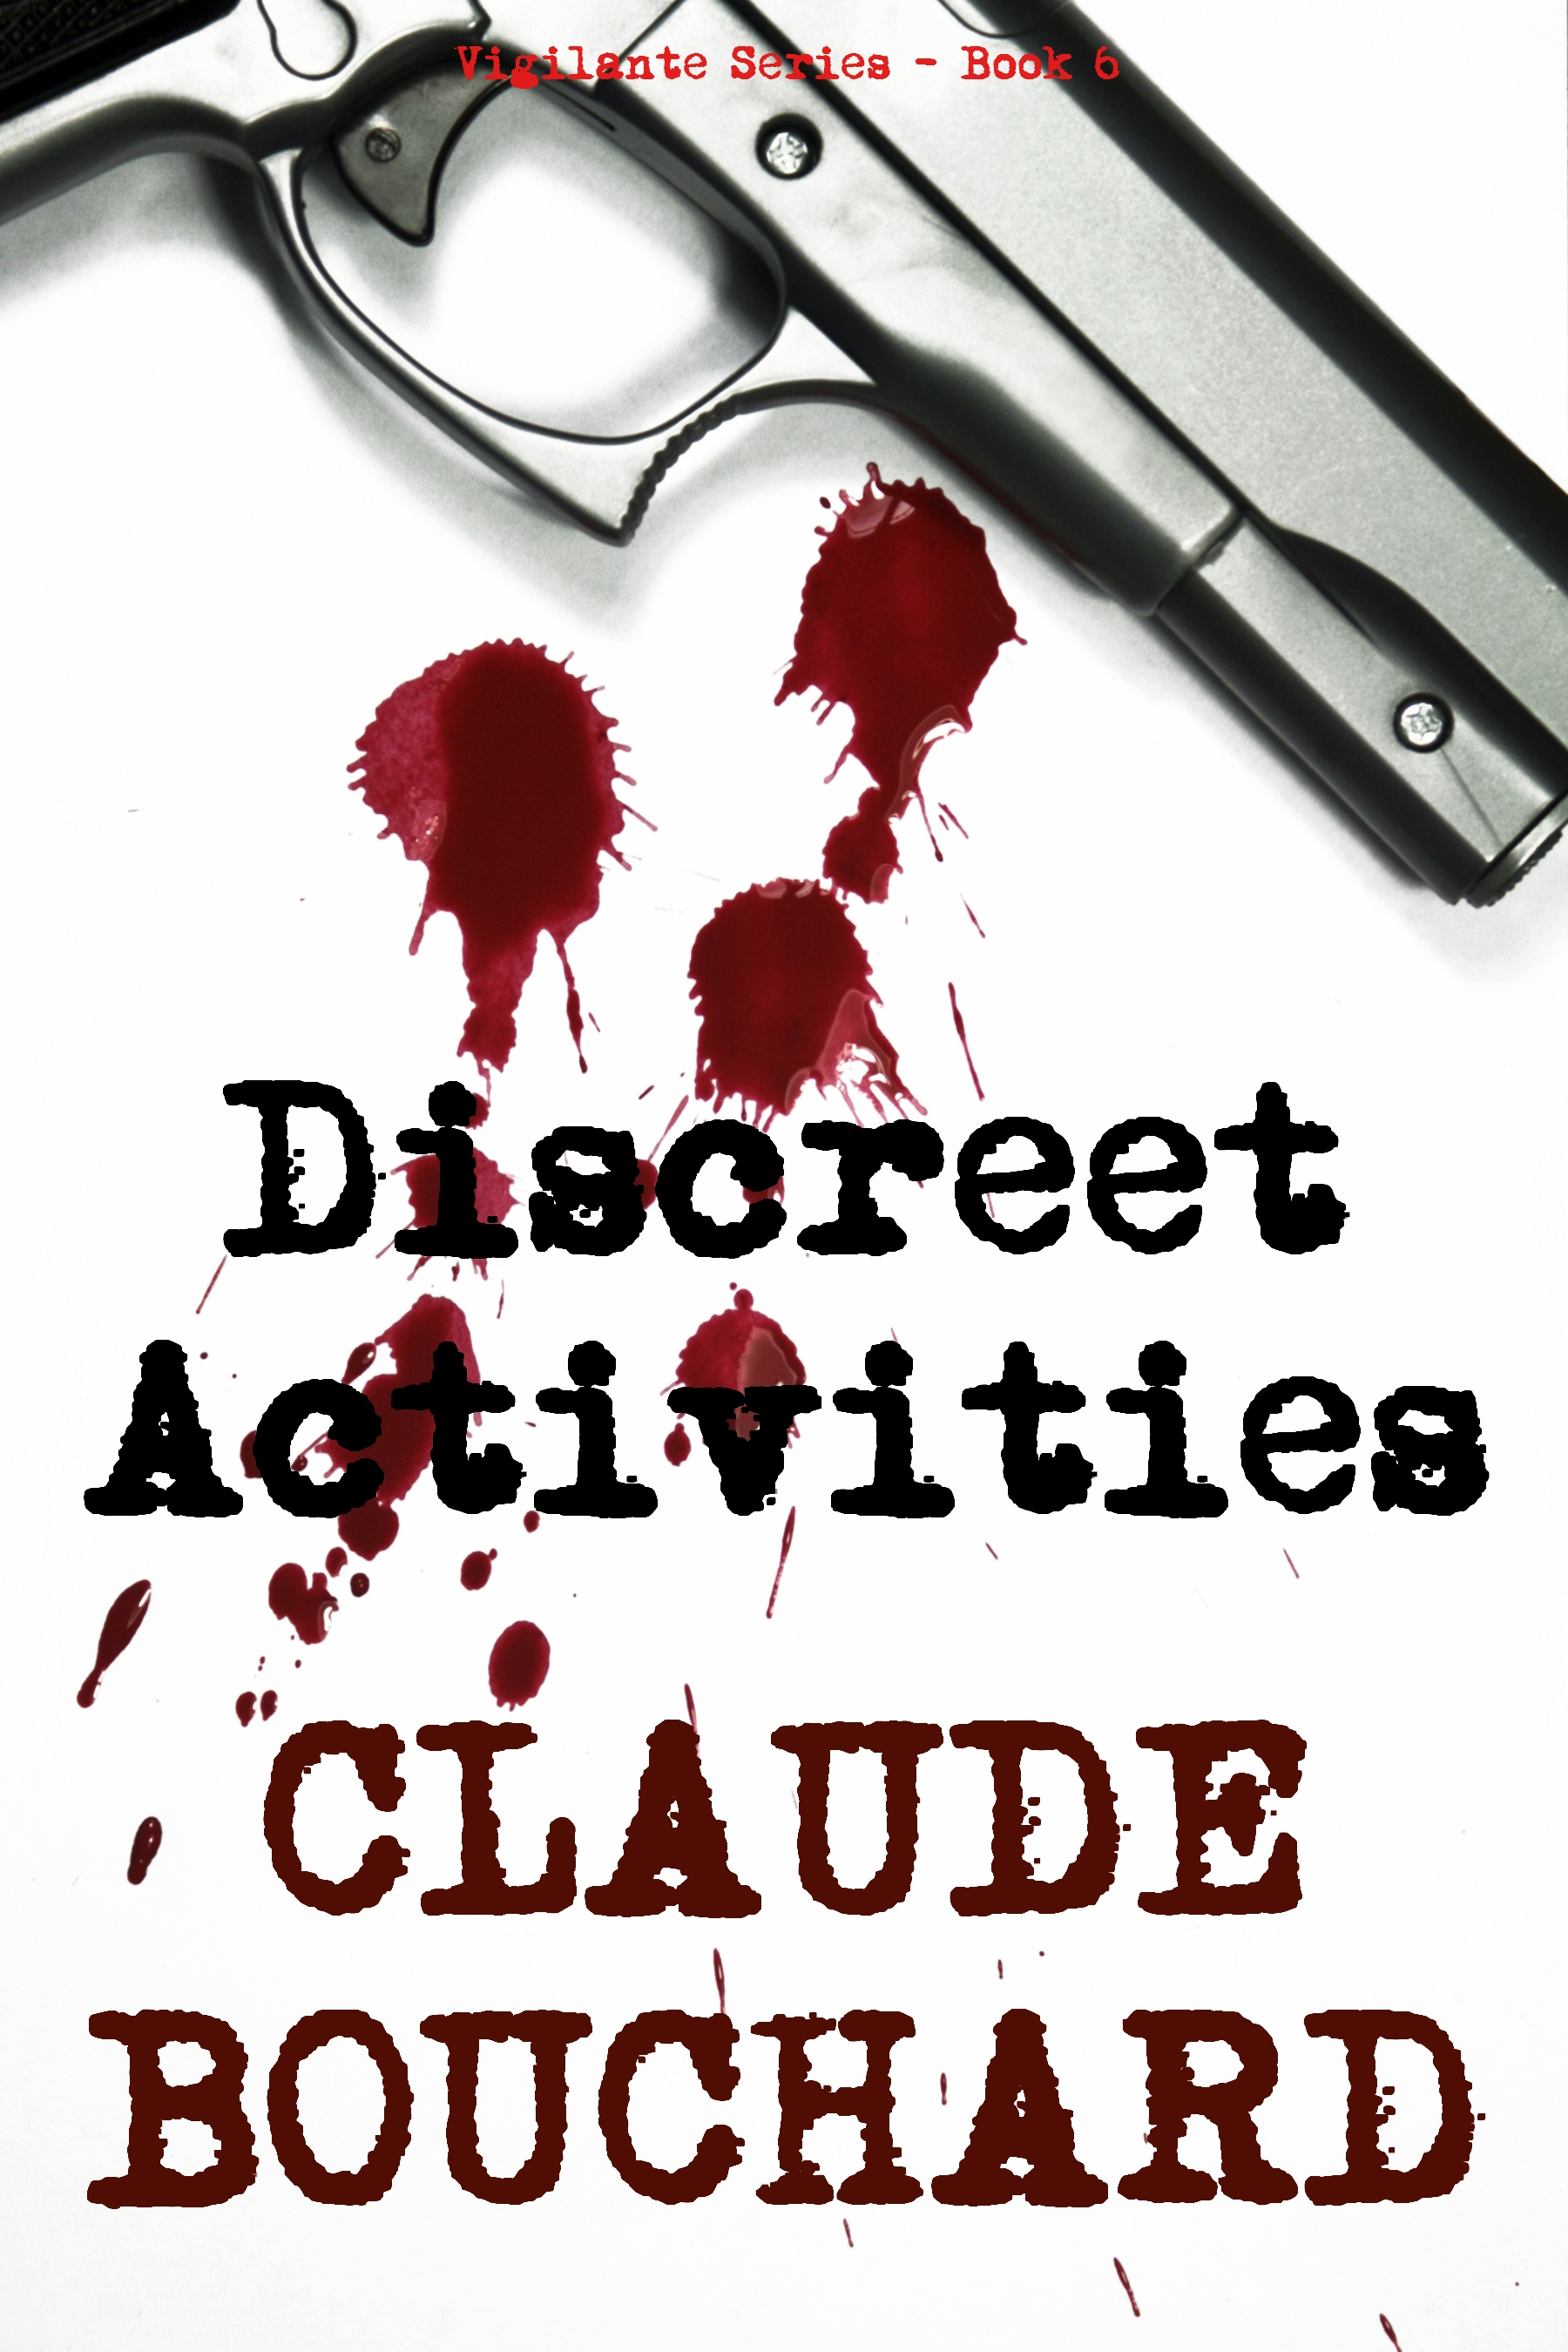 Discreet Activities (VIGILANTE Series - Book 6)